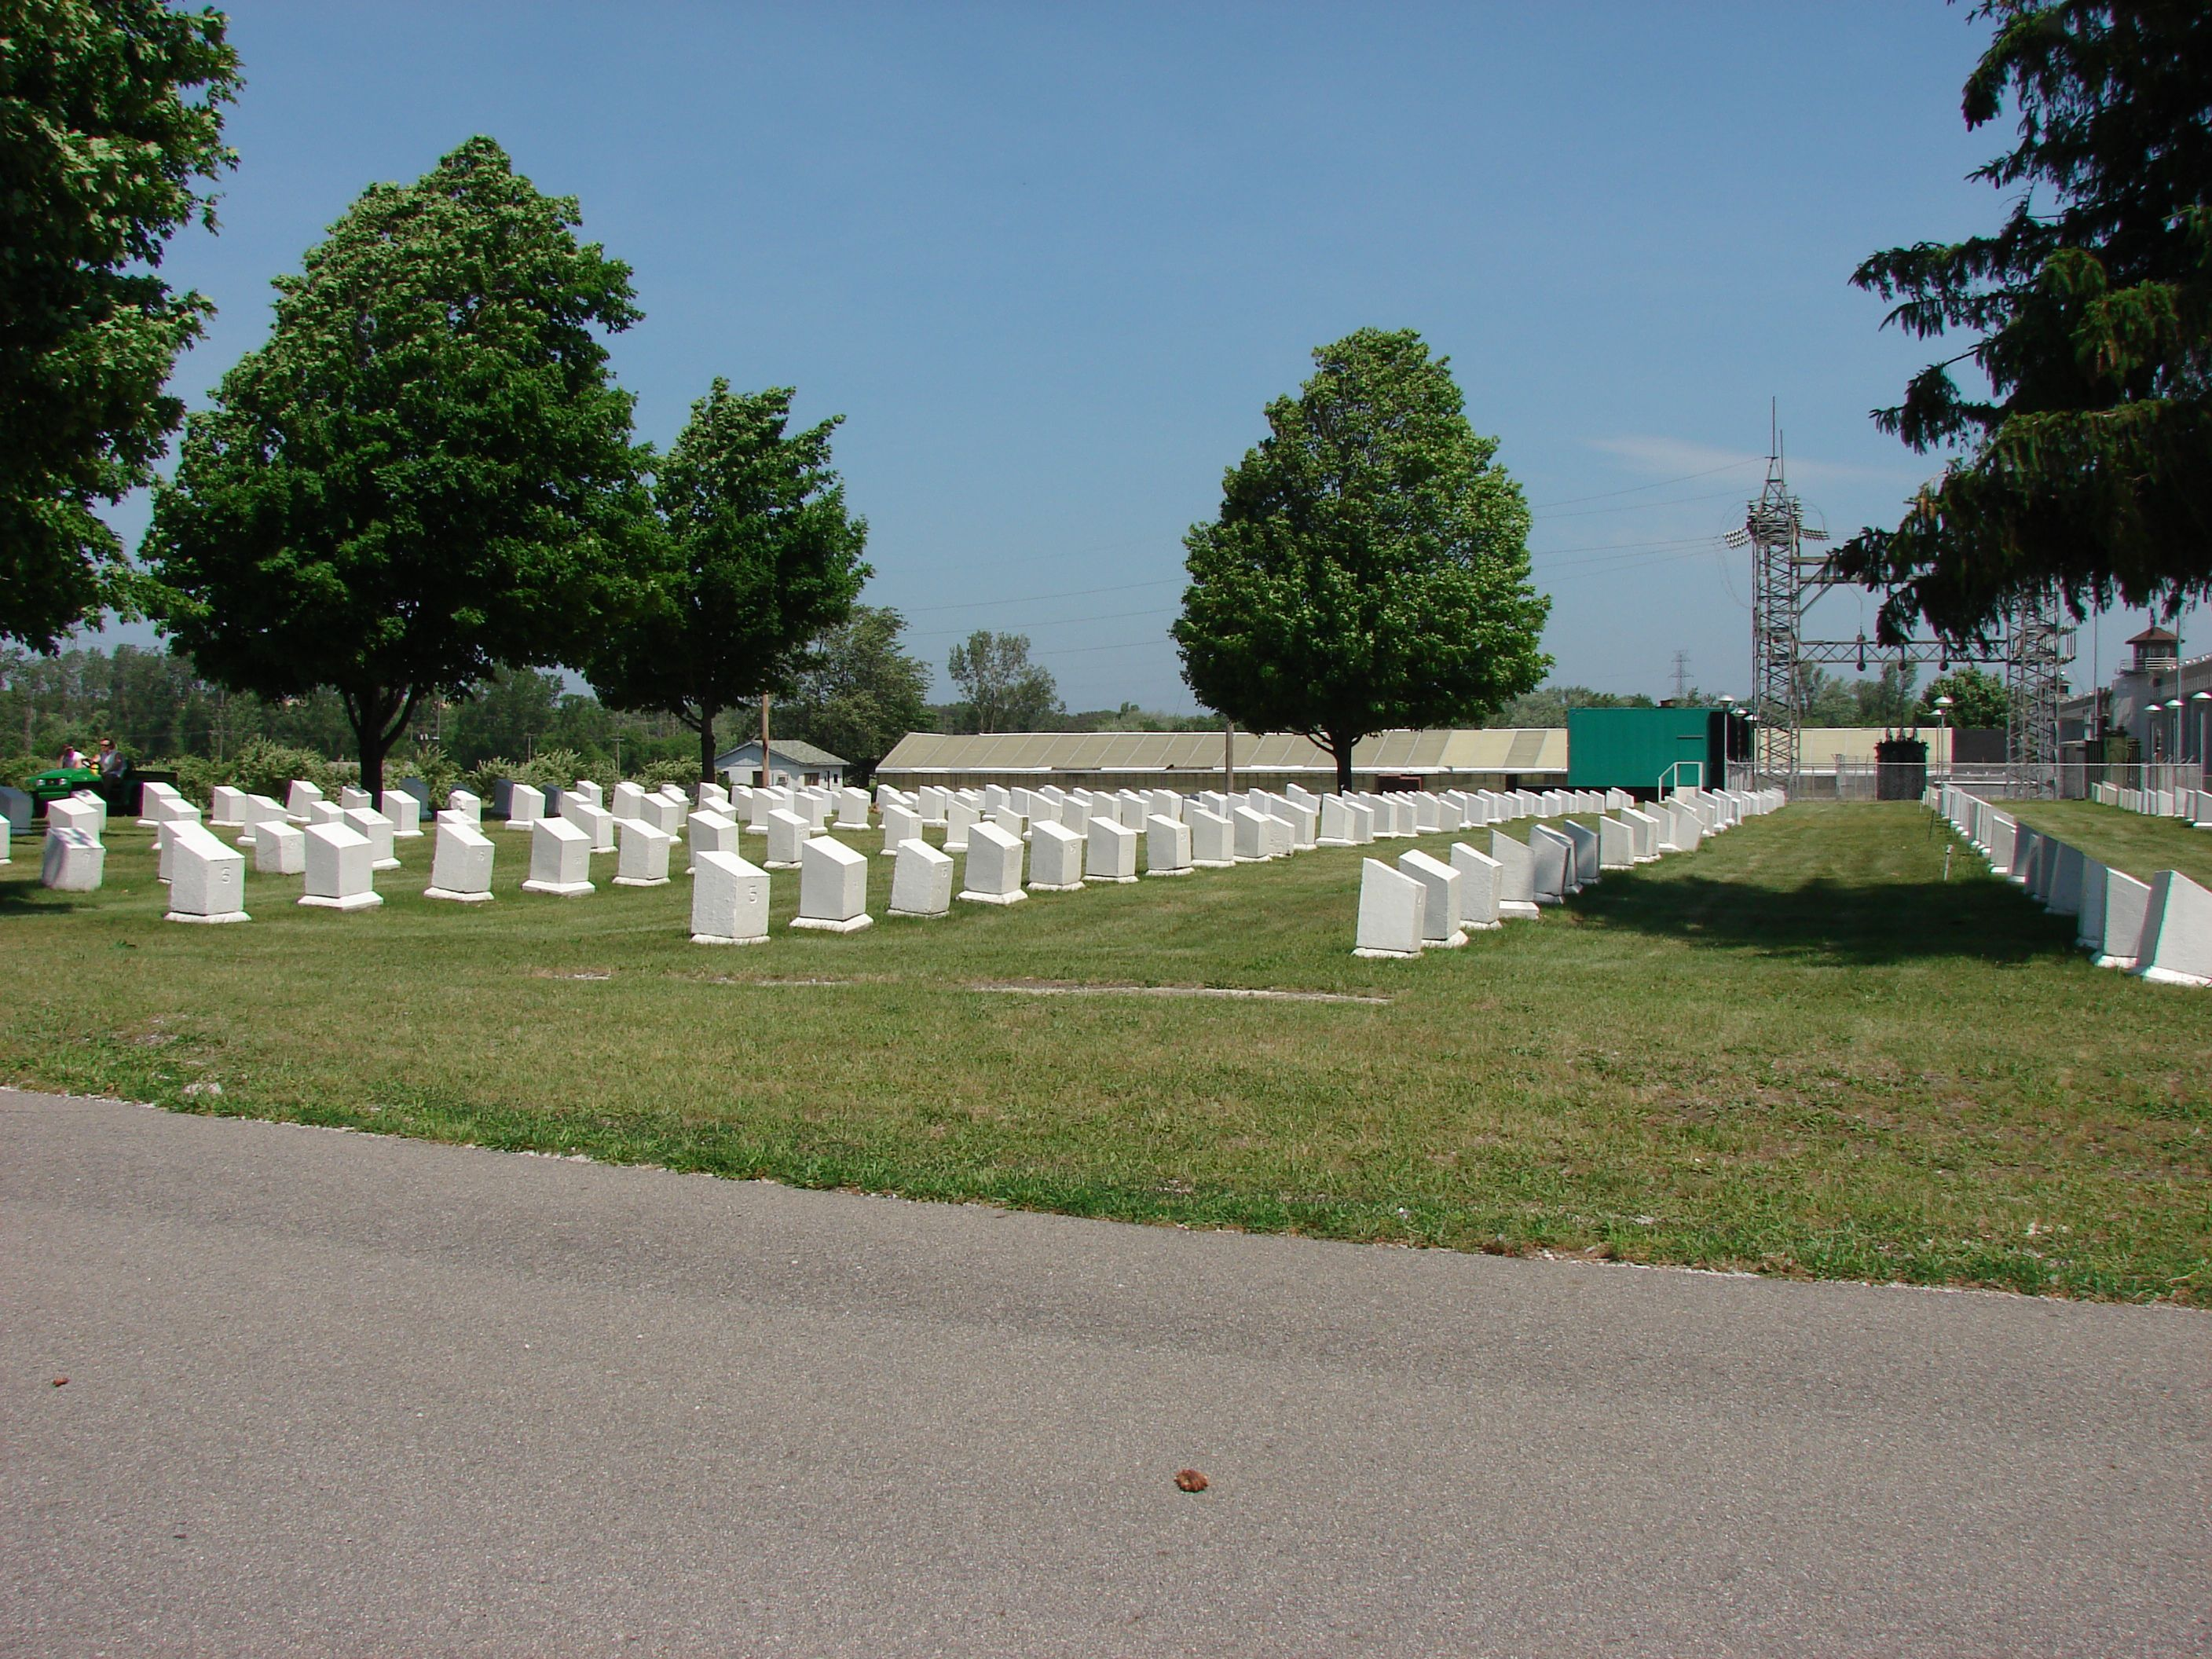 Indiana State Prison Cemetery In Michigan City Indiana Find A Grave Cemetery